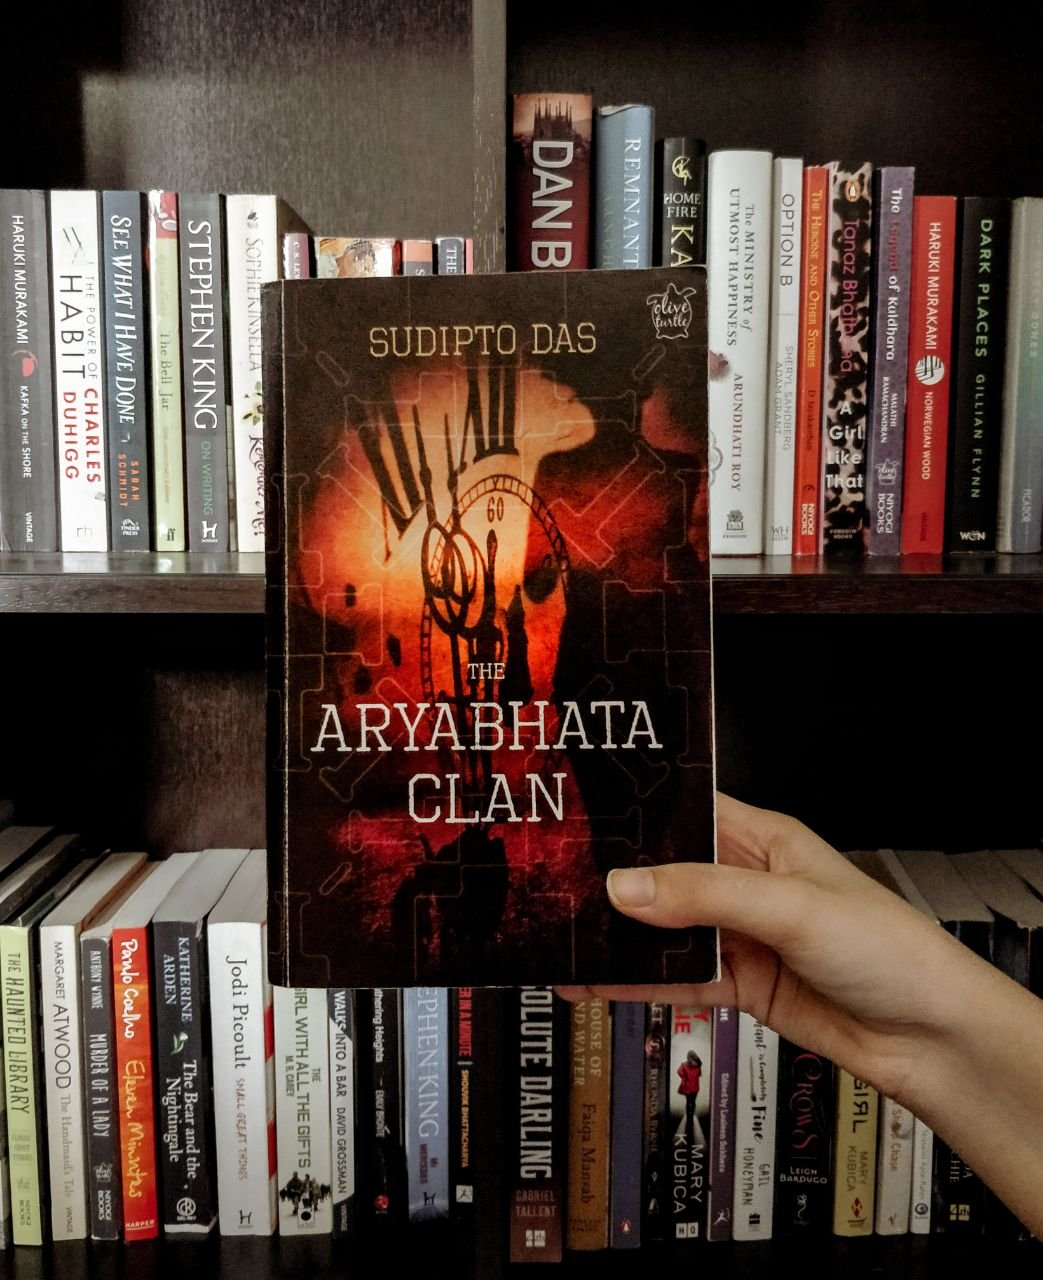 The Aryabhata Clan by Sudipto Das